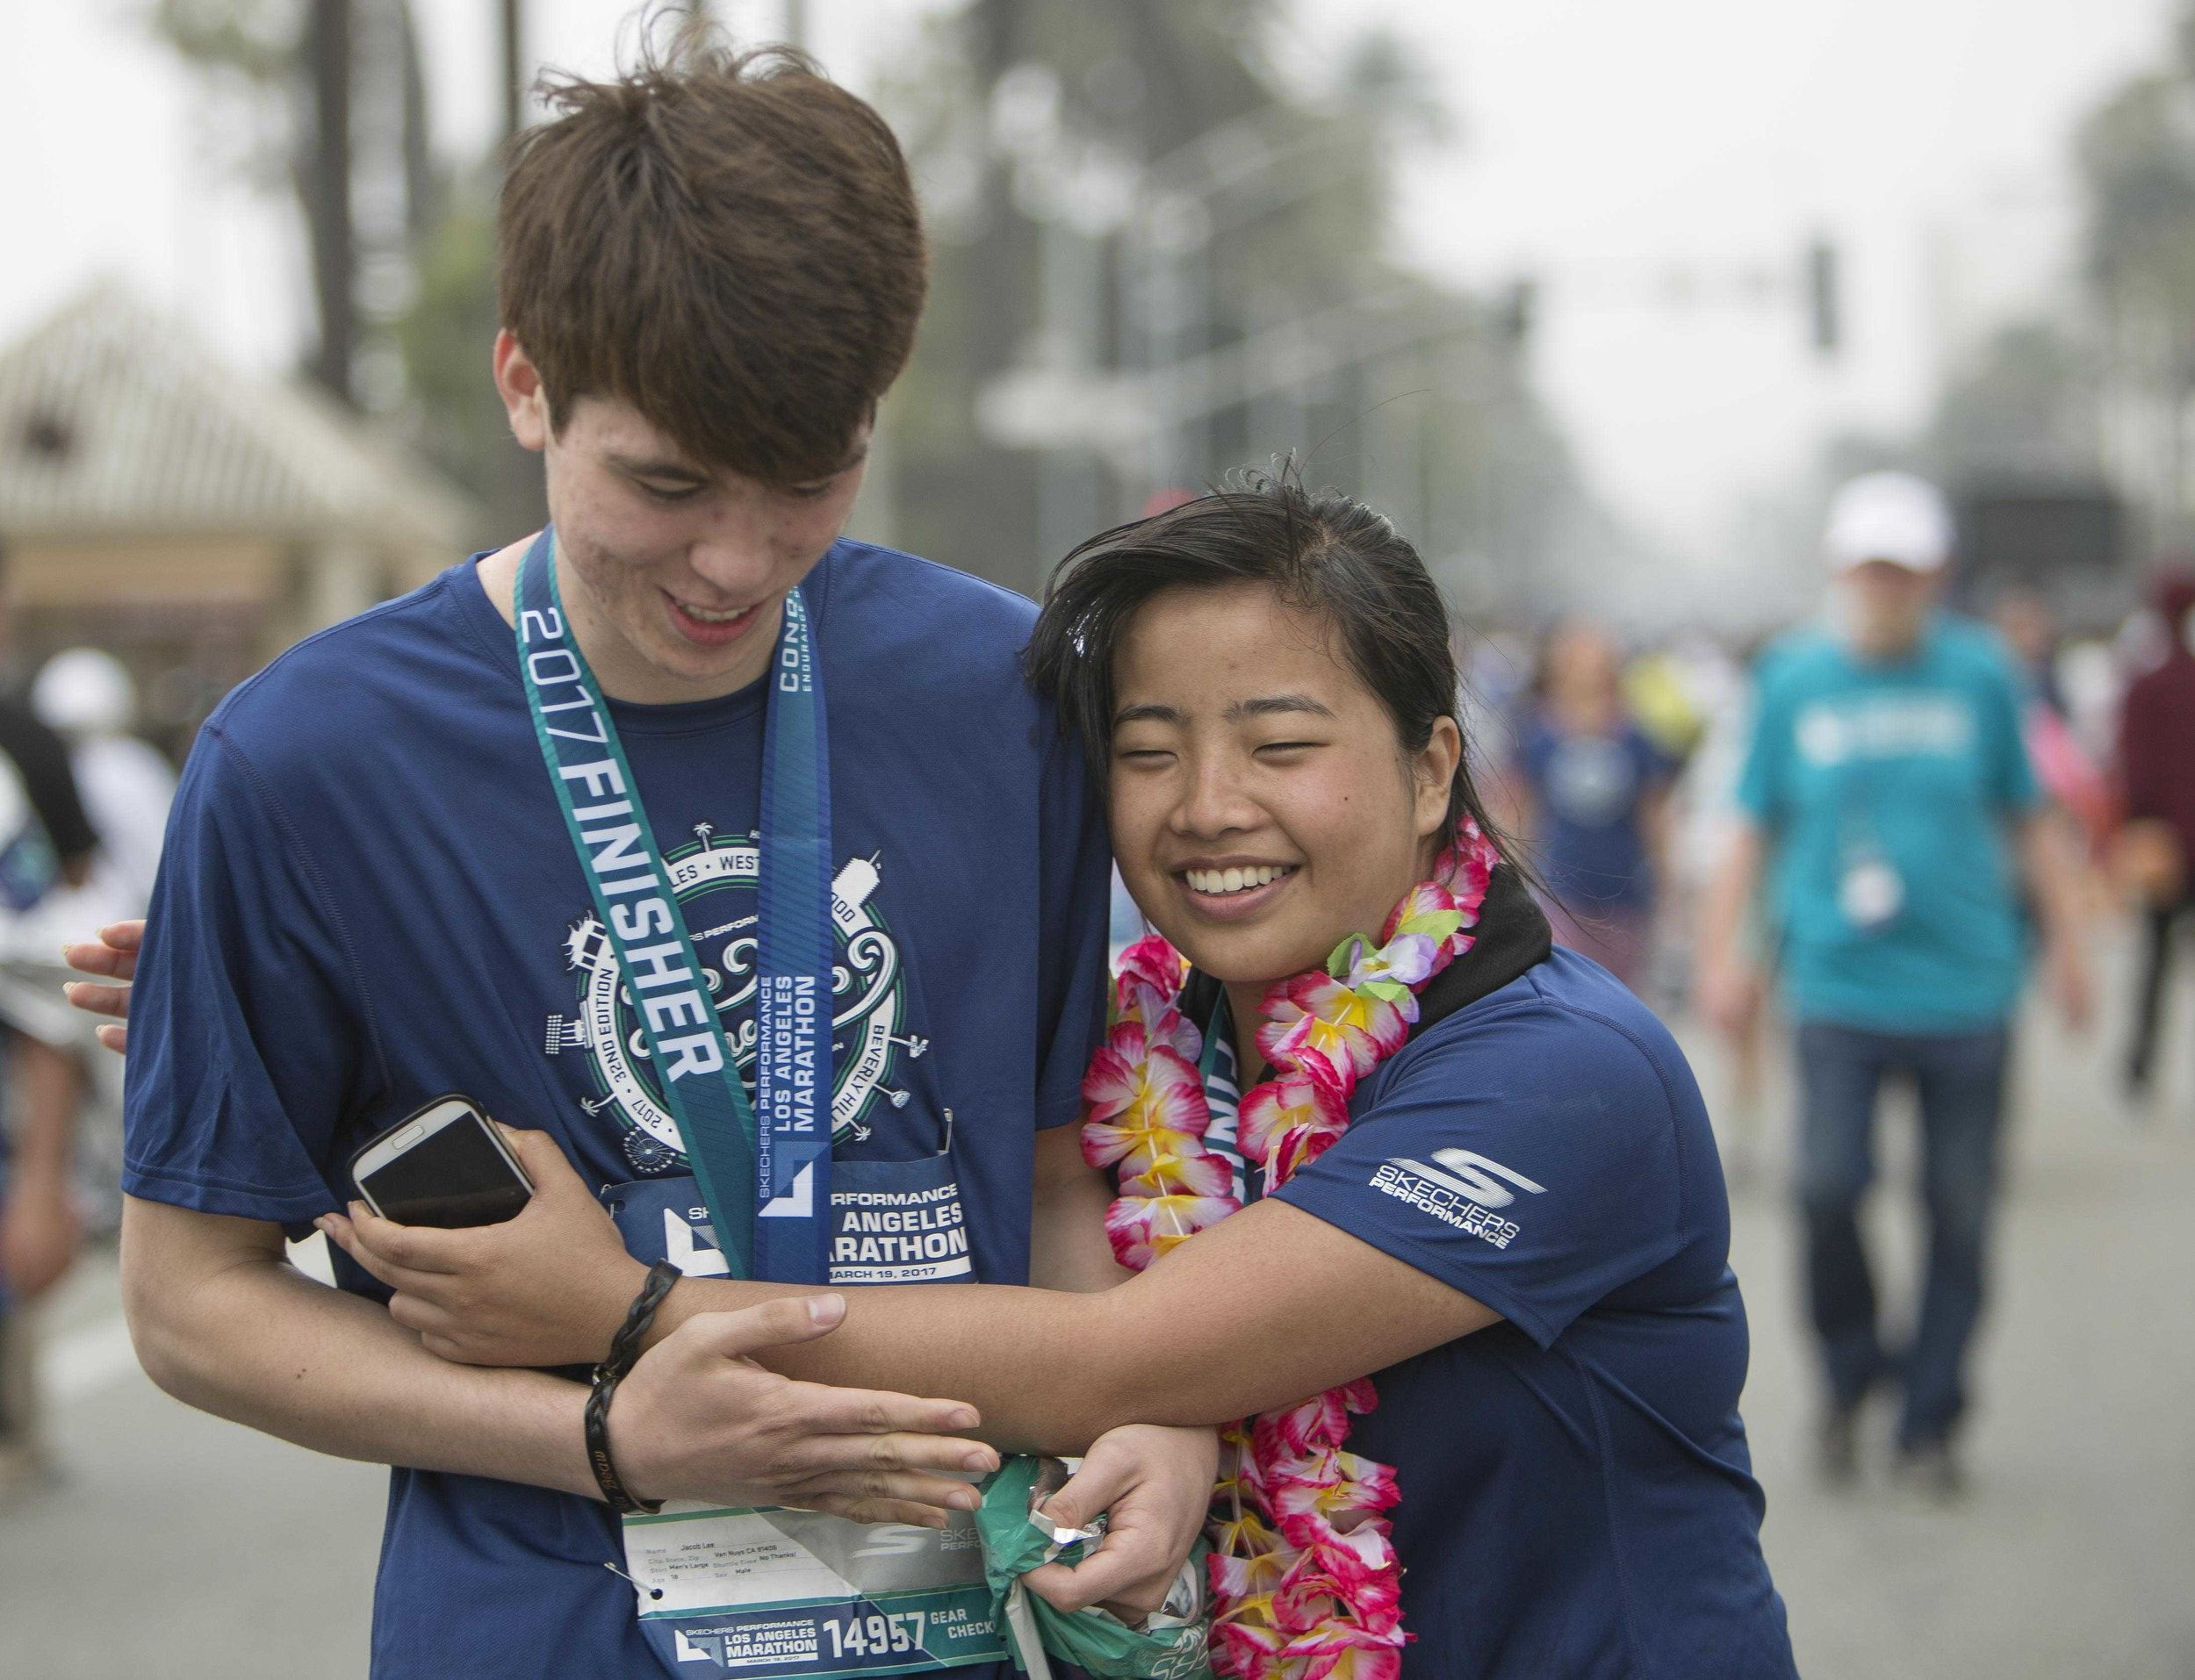 March 19, 2017. Kathy Pho (right) completes the 2017 LA Marathon and embraces her childhood friend Jacob Lee (left) who ran The LA Marathon along side her. Kathy Pho finished the marathon in five hours fourty nine minutes fifty four seconds. Santa Monica, California. Daniel Bowyer